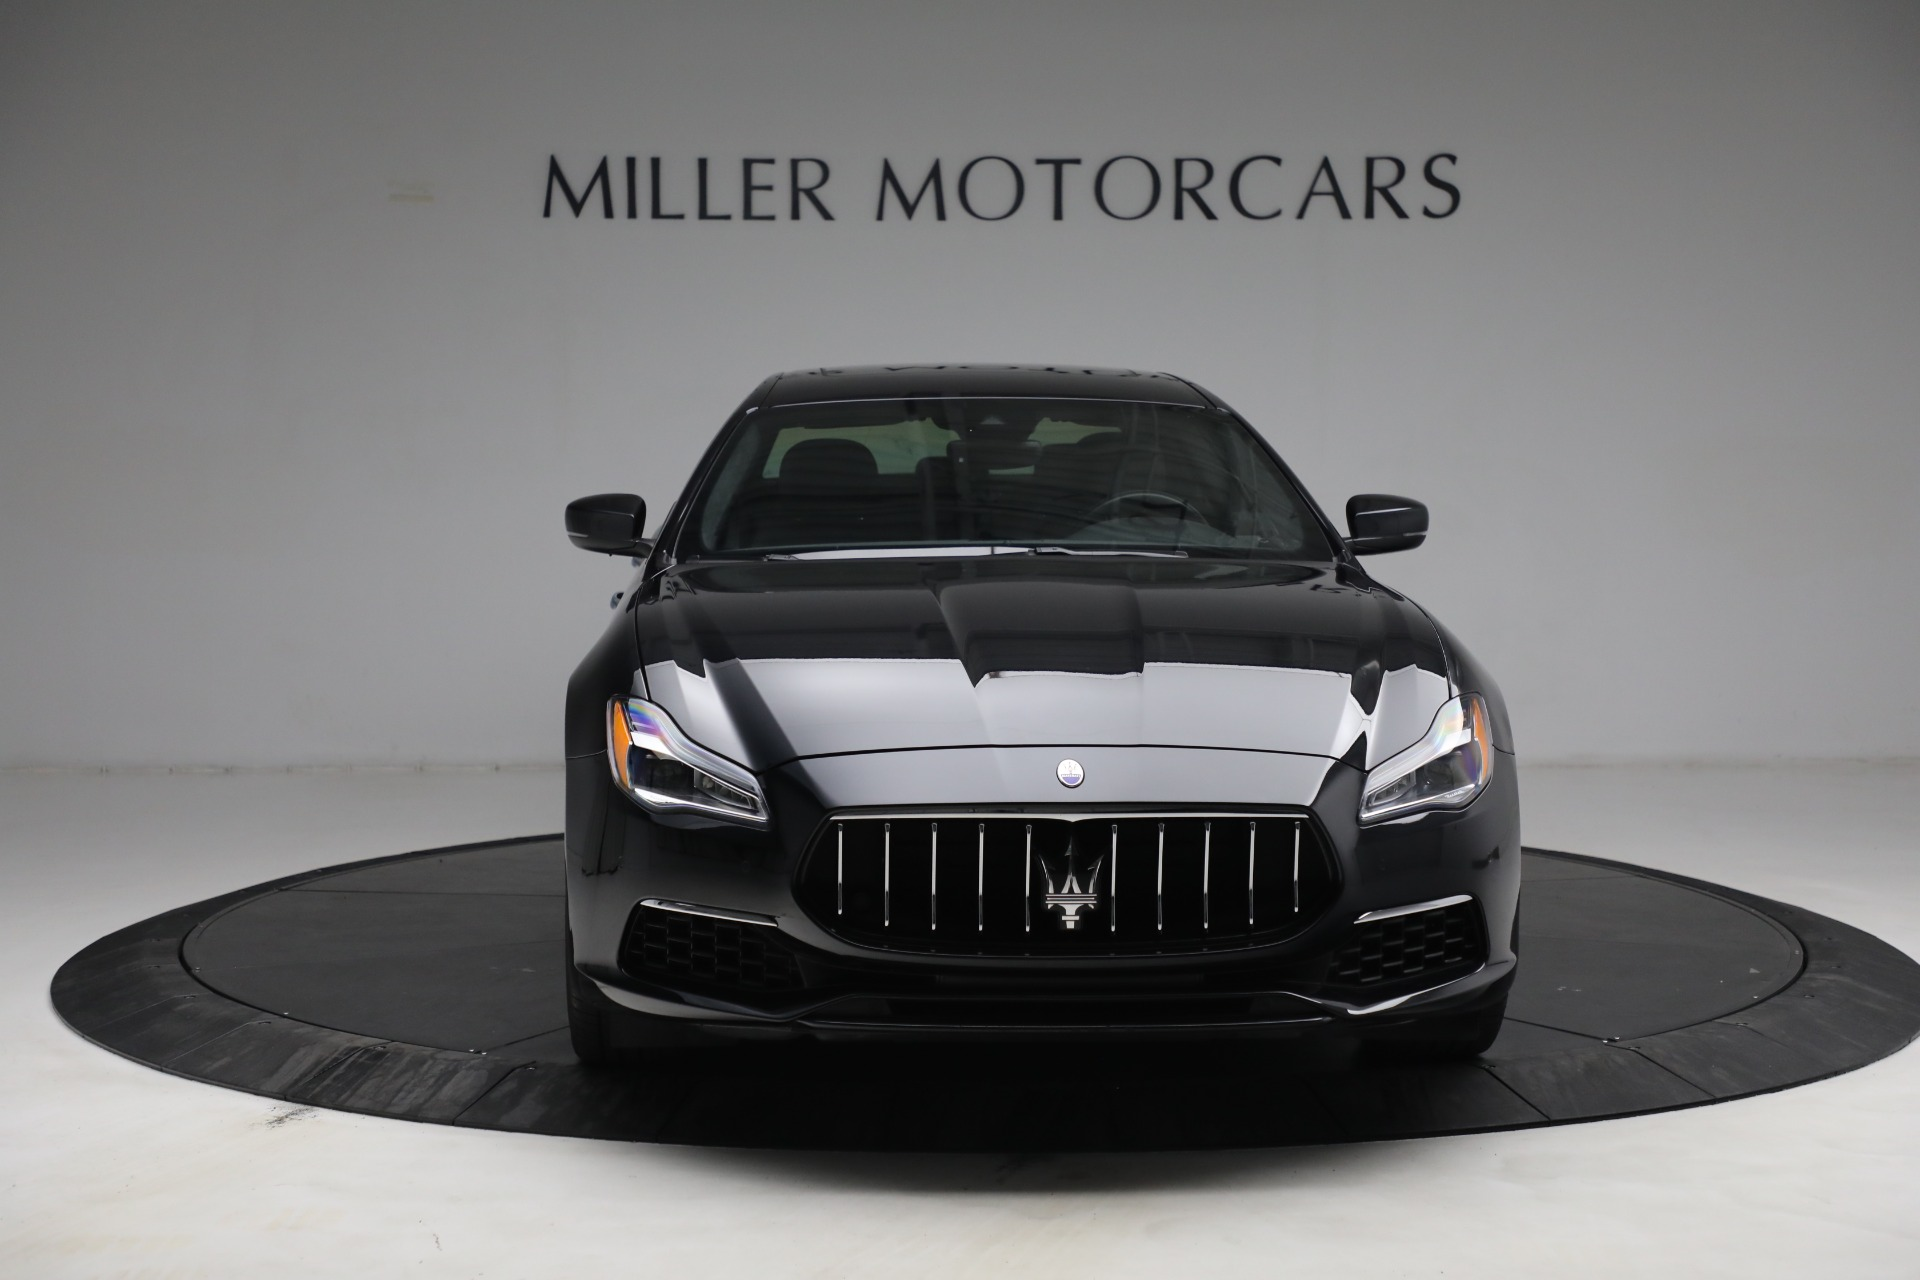 New 2019 Maserati Quattroporte S Q4 GranLusso For Sale In Greenwich, CT 2619_p13